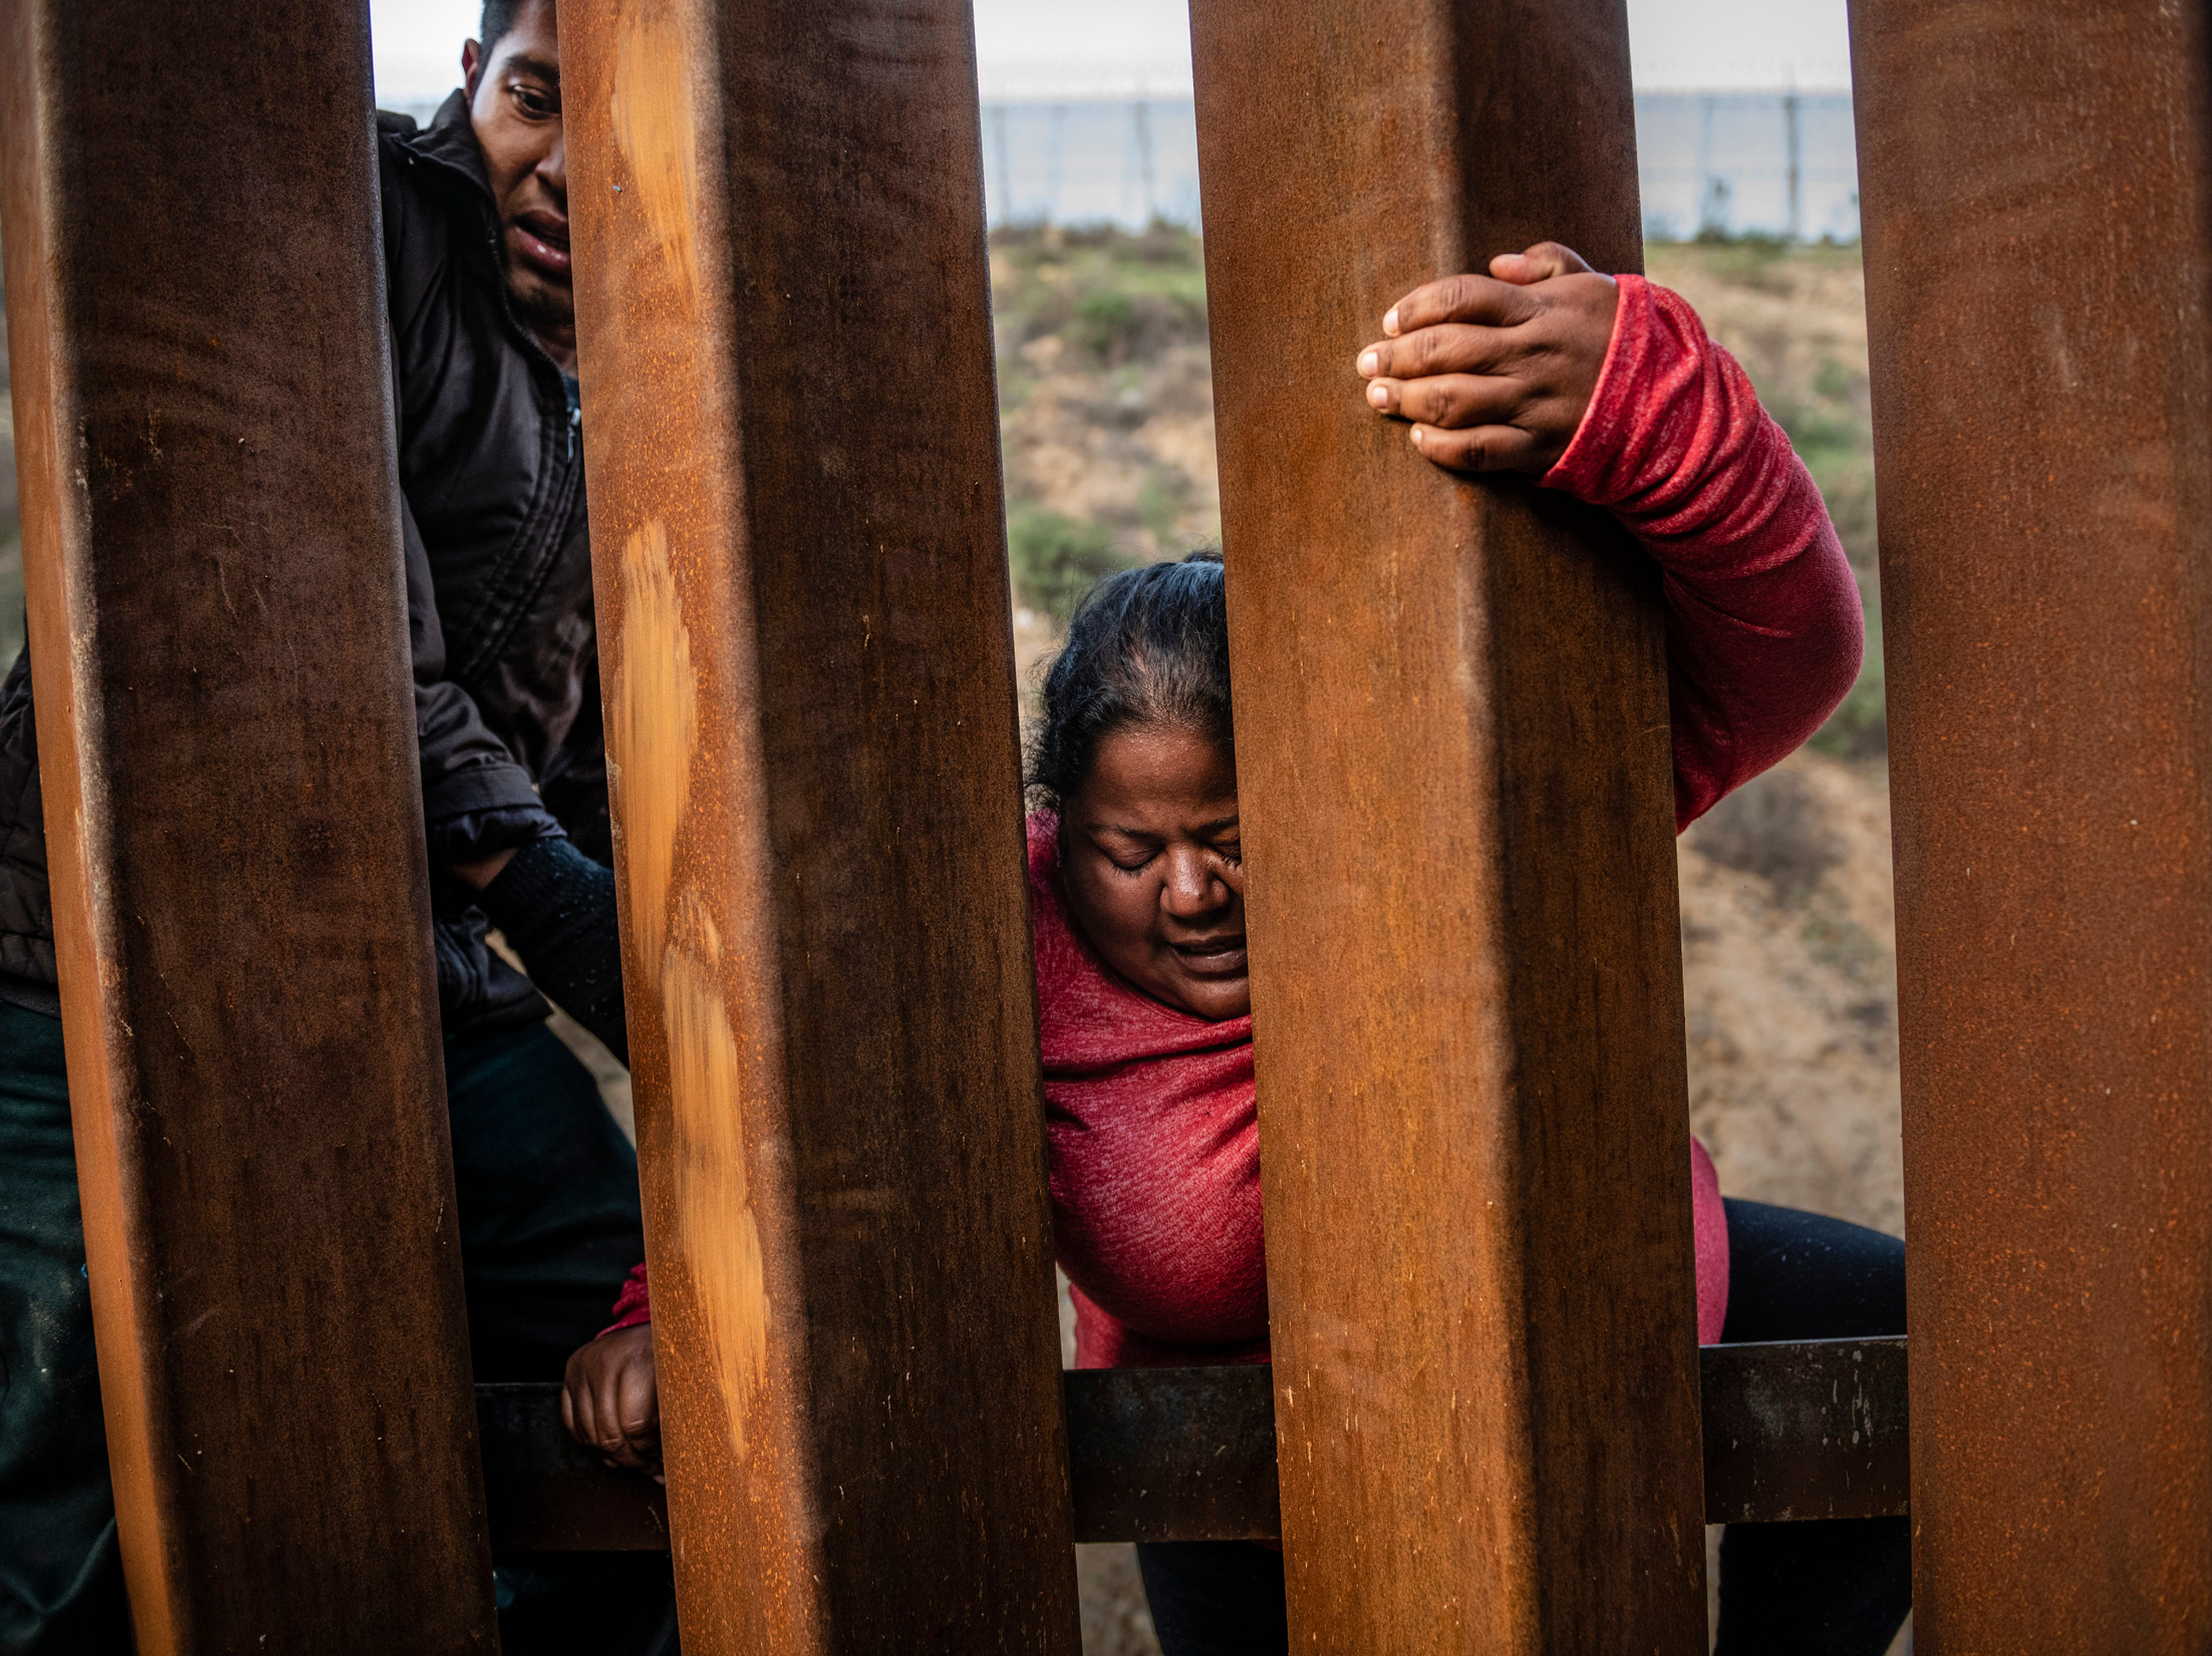 A migrant climbs the border fence before jumping into the U.S. to San Diego, Calif., from Tijuana, Mexico, Thursday, Dec. 27, 2018.